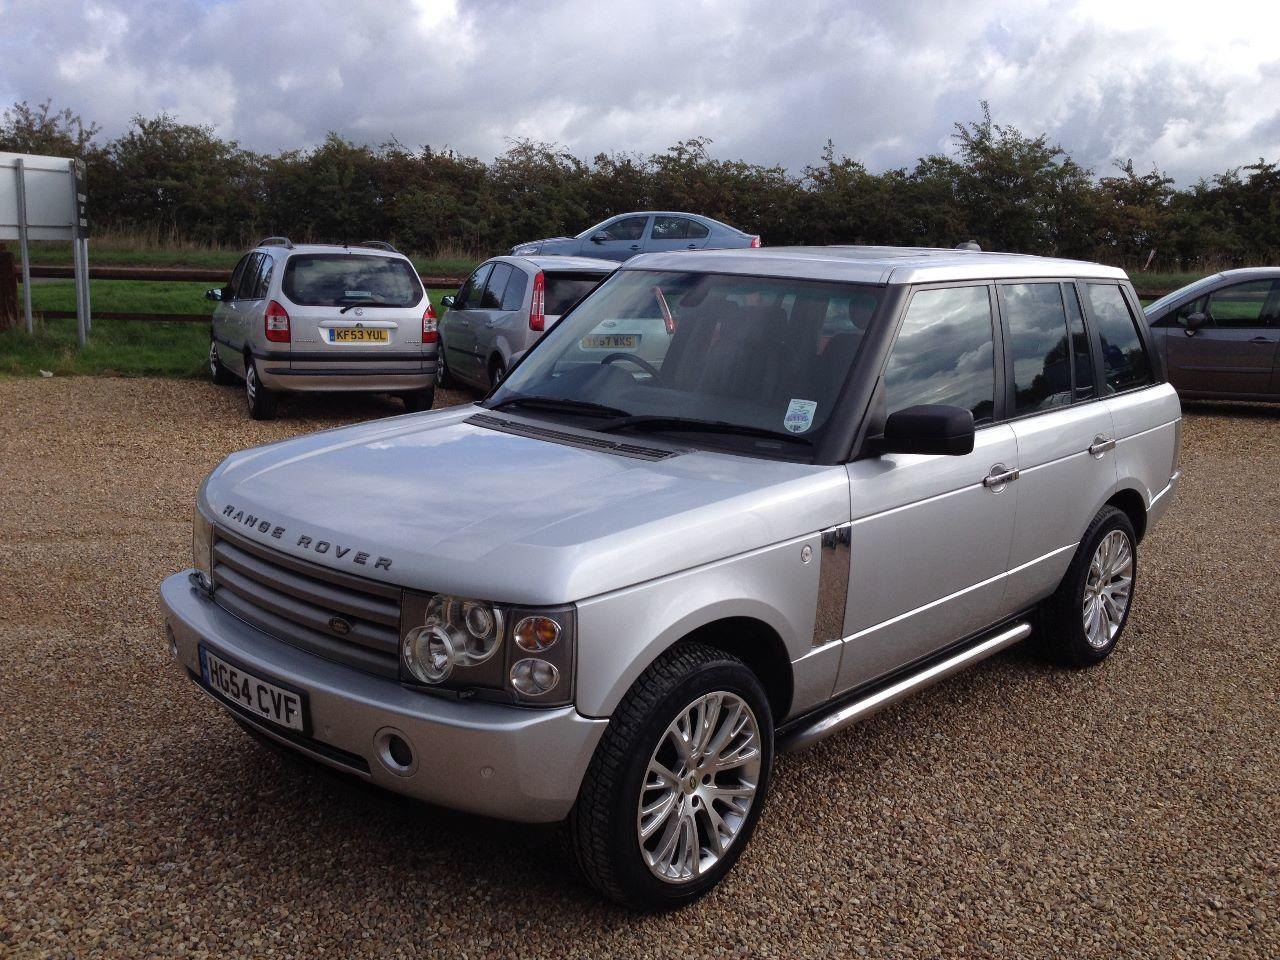 Land Rover Range Rover 3.0 Td6 VOGUE 4dr Auto FACE LIFT MODEL, FULLY LOADED INC TOUCH SCREEN NAV AND REAR DVD SCREENS Four Wheel Drive Diesel Silver